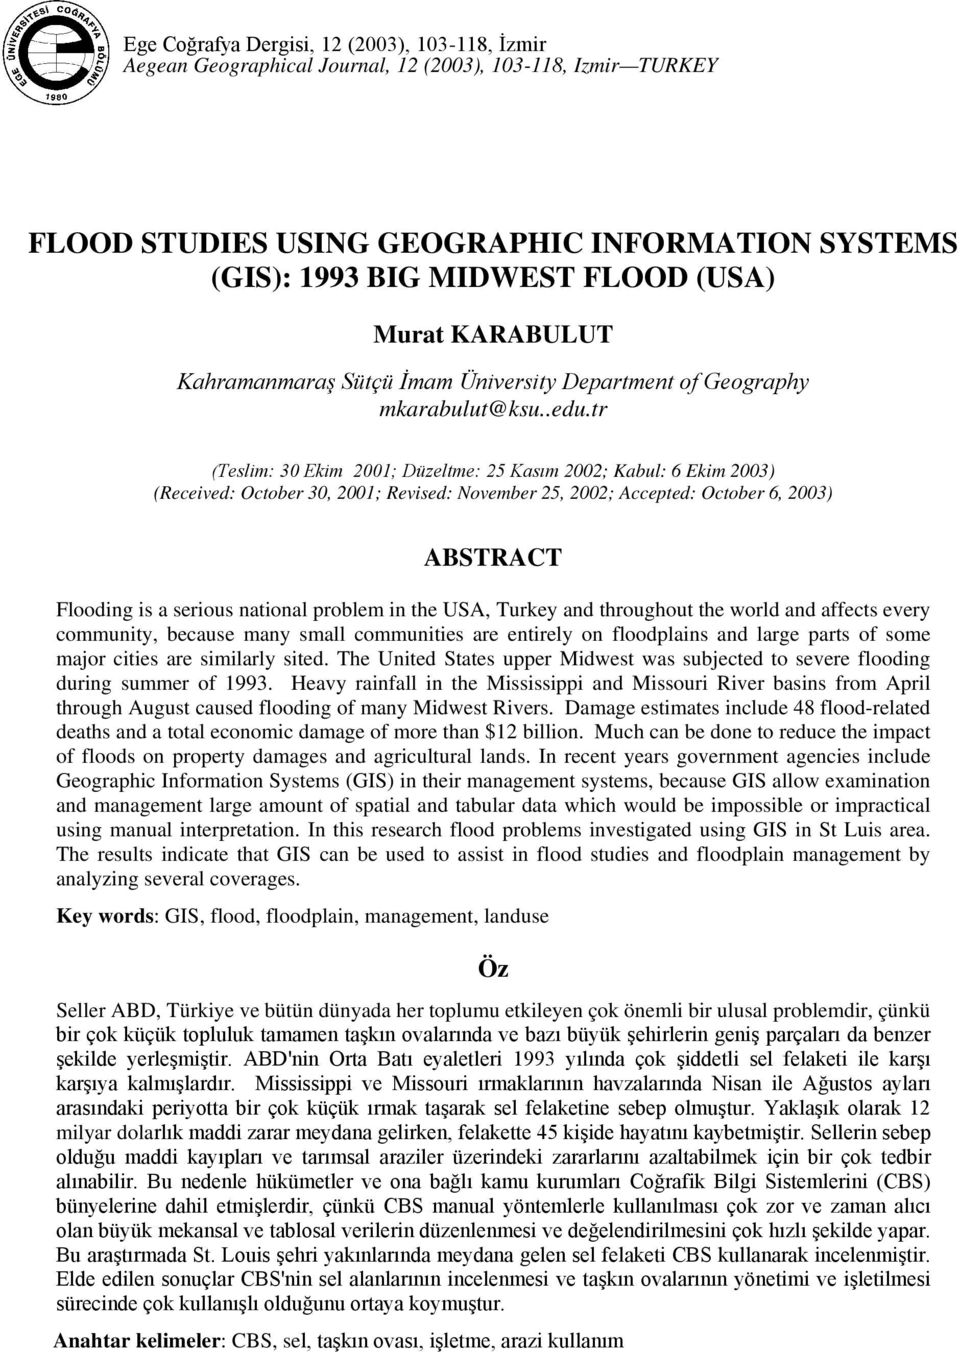 tr (Teslim: 30 Ekim 2001; Düzeltme: 25 Kasım 2002; Kabul: 6 Ekim 2003) (Received: October 30, 2001; Revised: November 25, 2002; Accepted: October 6, 2003) ABSTRACT Flooding is a serious national